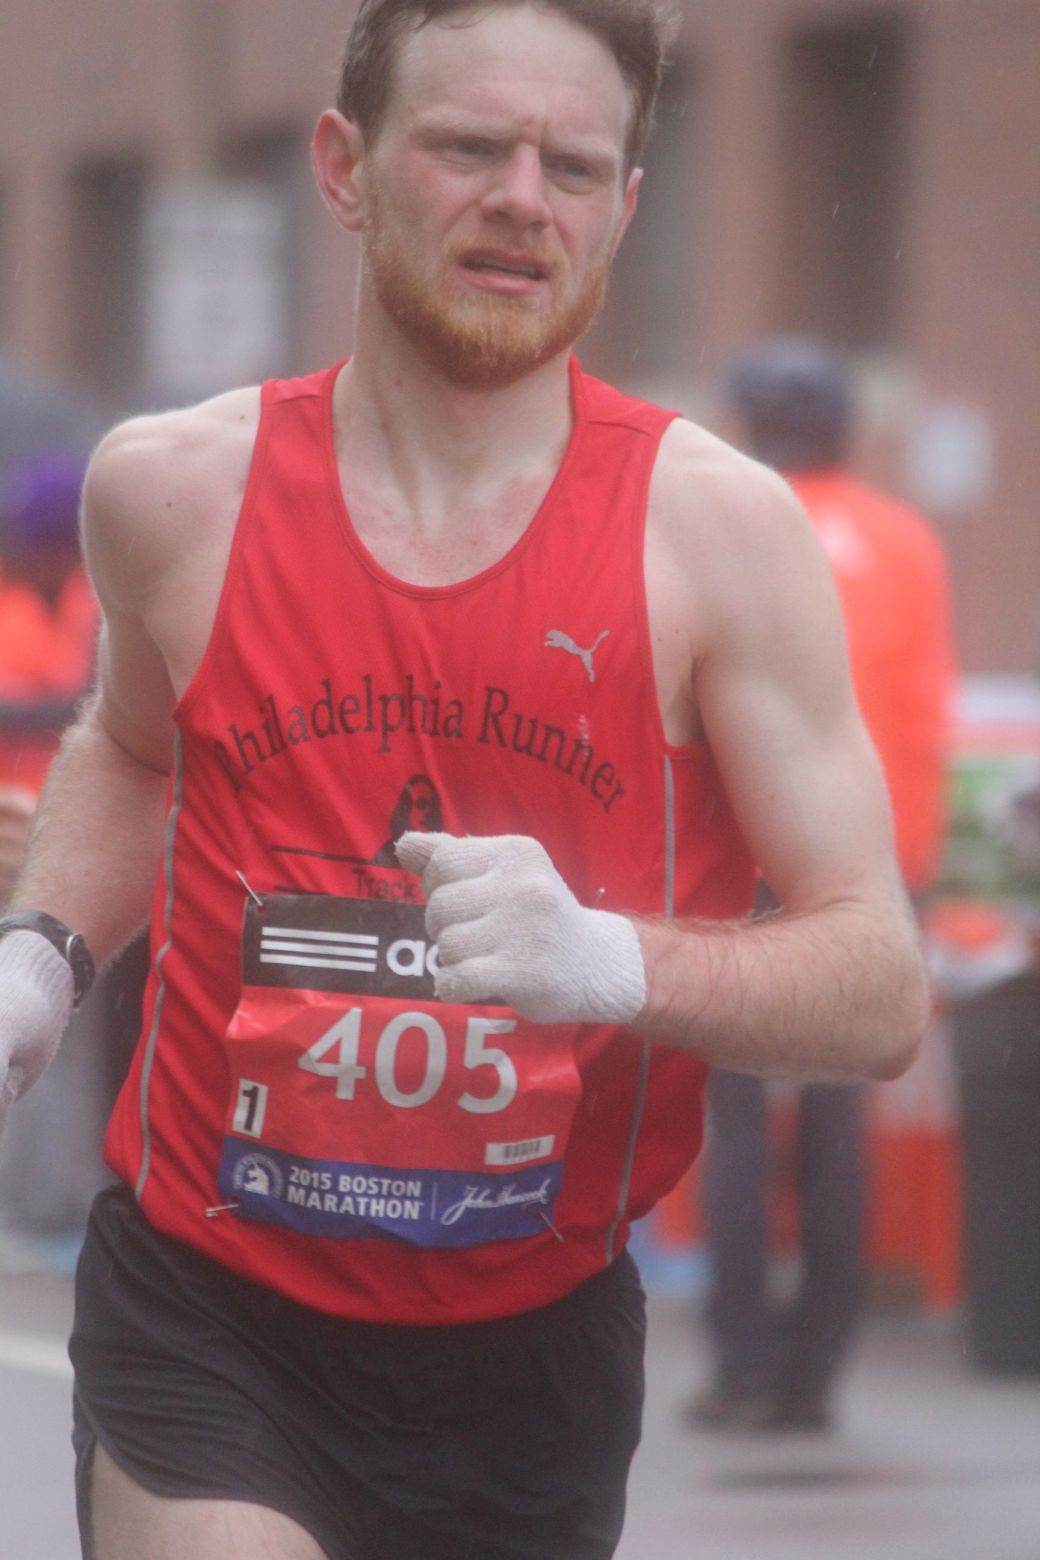 boston marathon april 20 2015 racer number 405